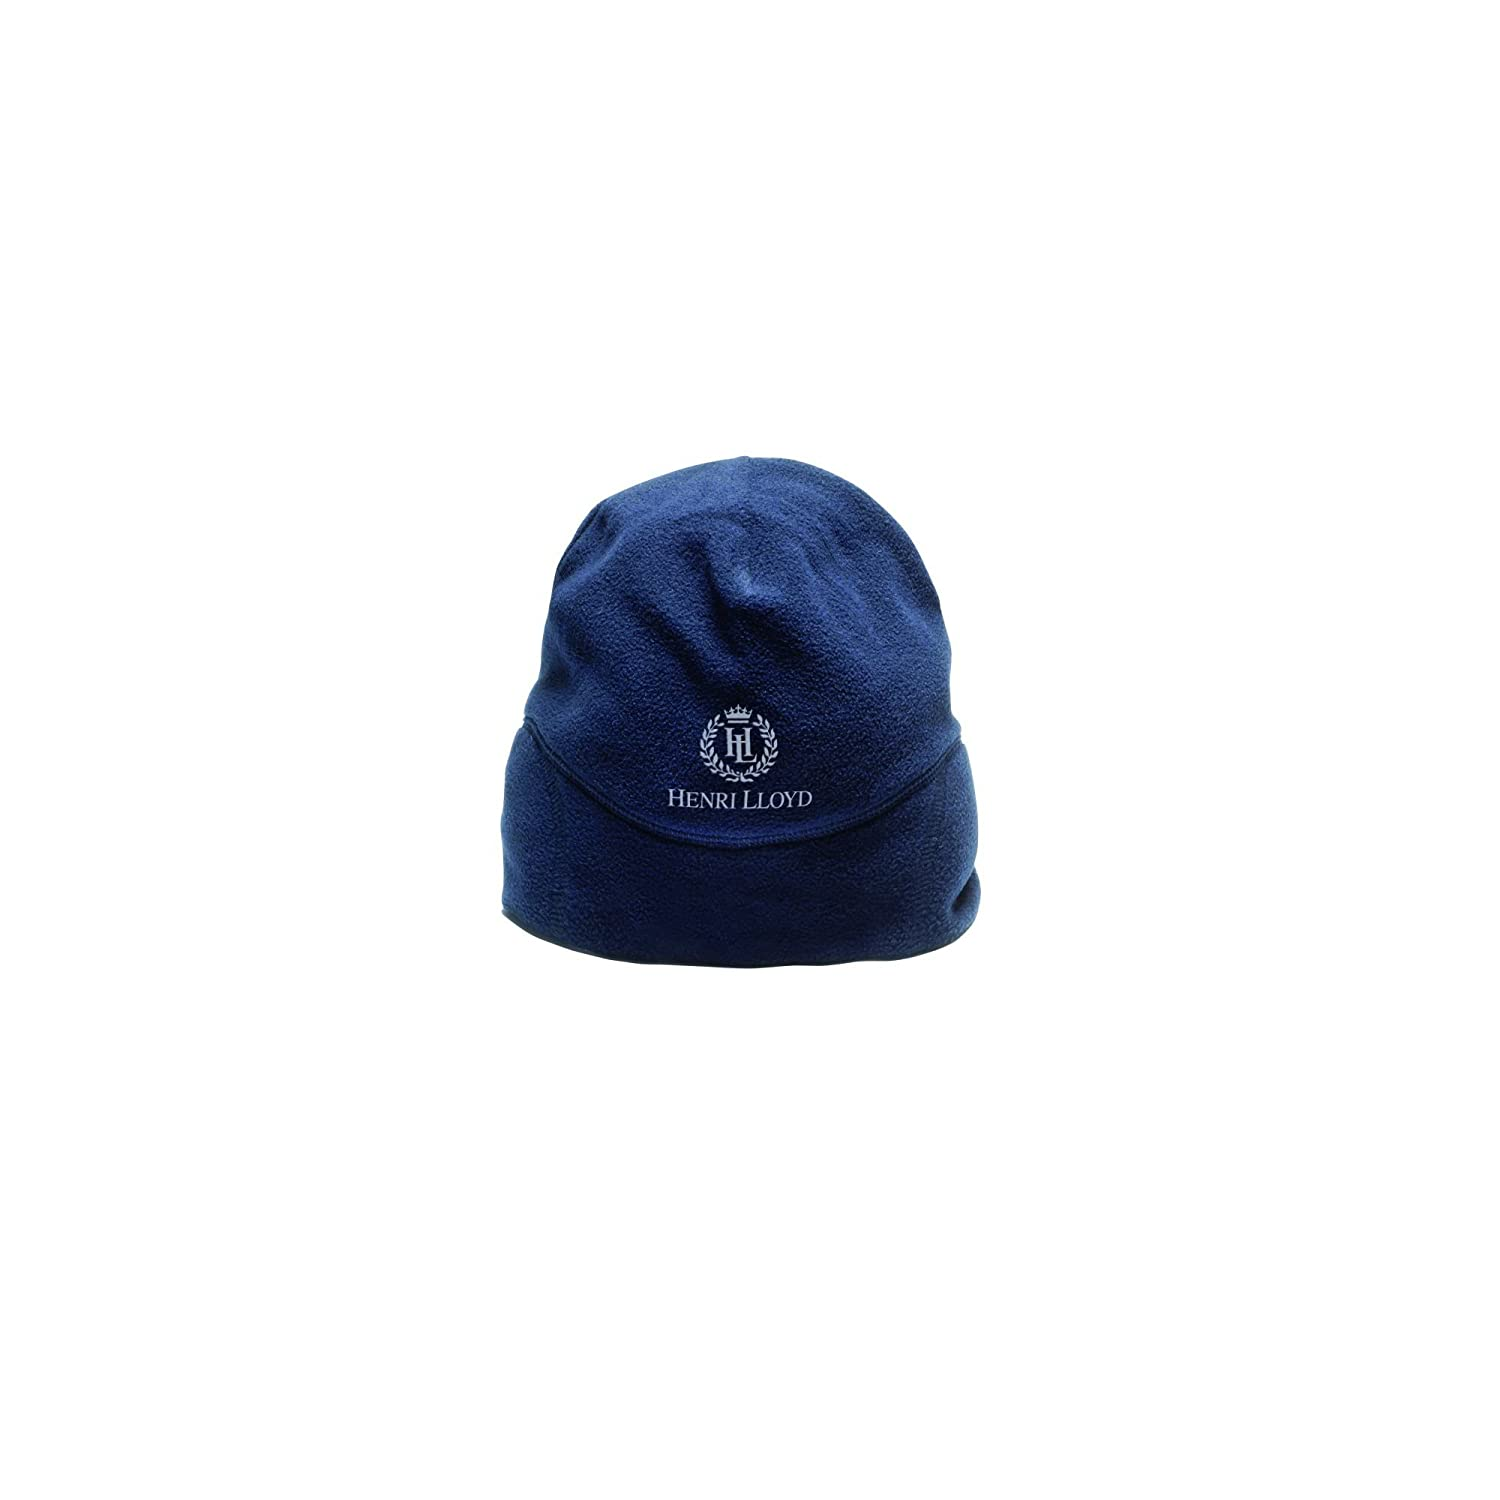 Henri Lloyd Blue Eco Beanie in CARBON Y60090  Amazon.co.uk  Sports    Outdoors a9637a8c046